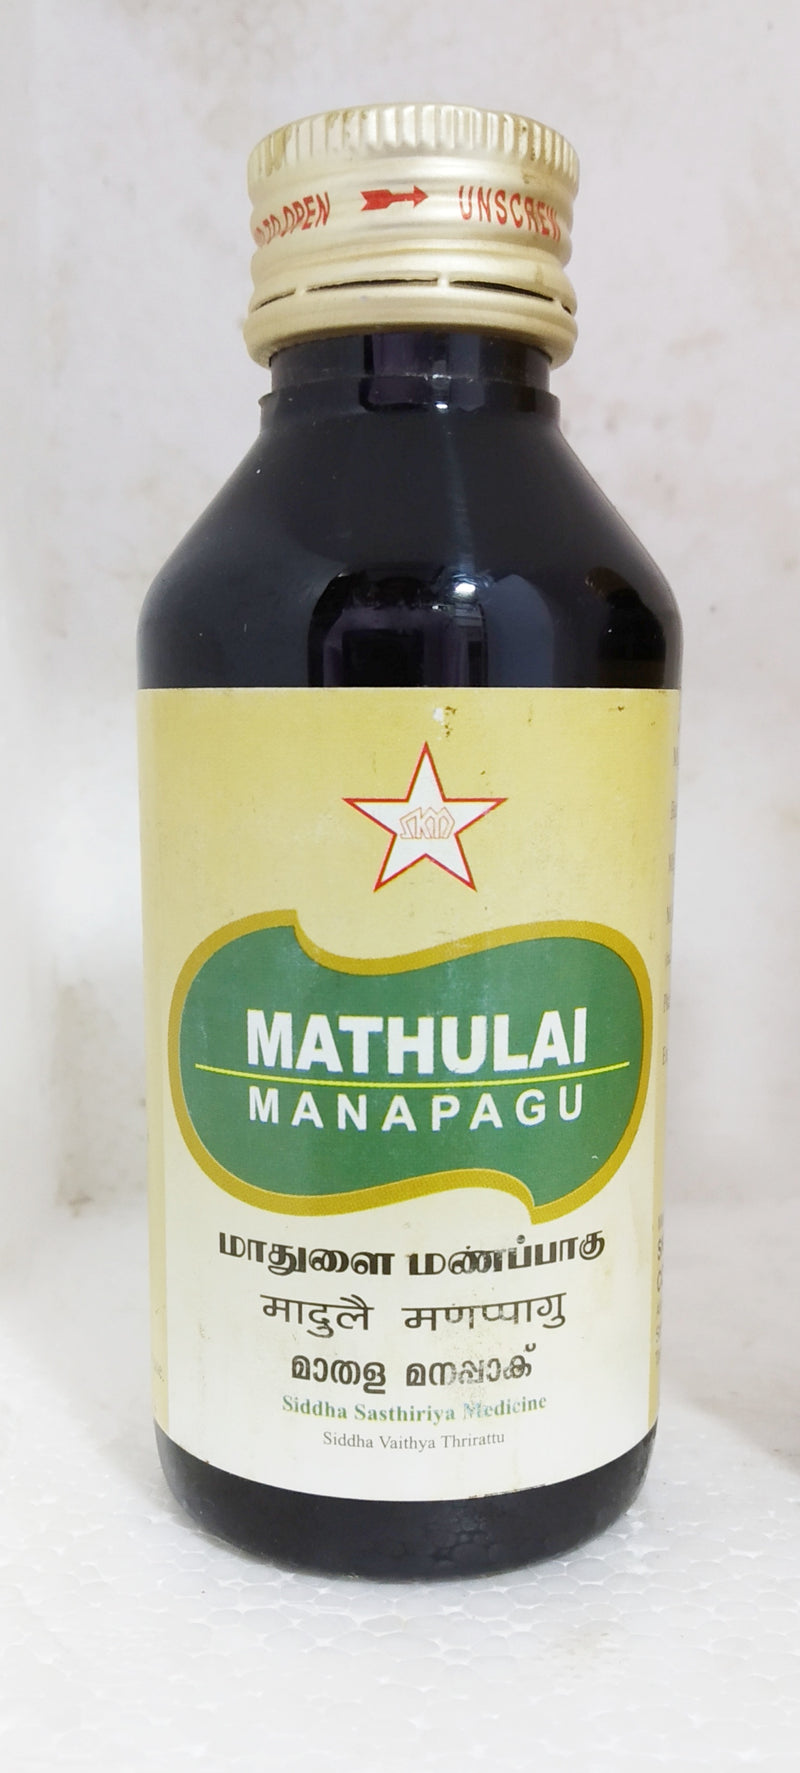 SKM Mathulai Manappagu Syrup 150gm (Siddha) - Ayush Care